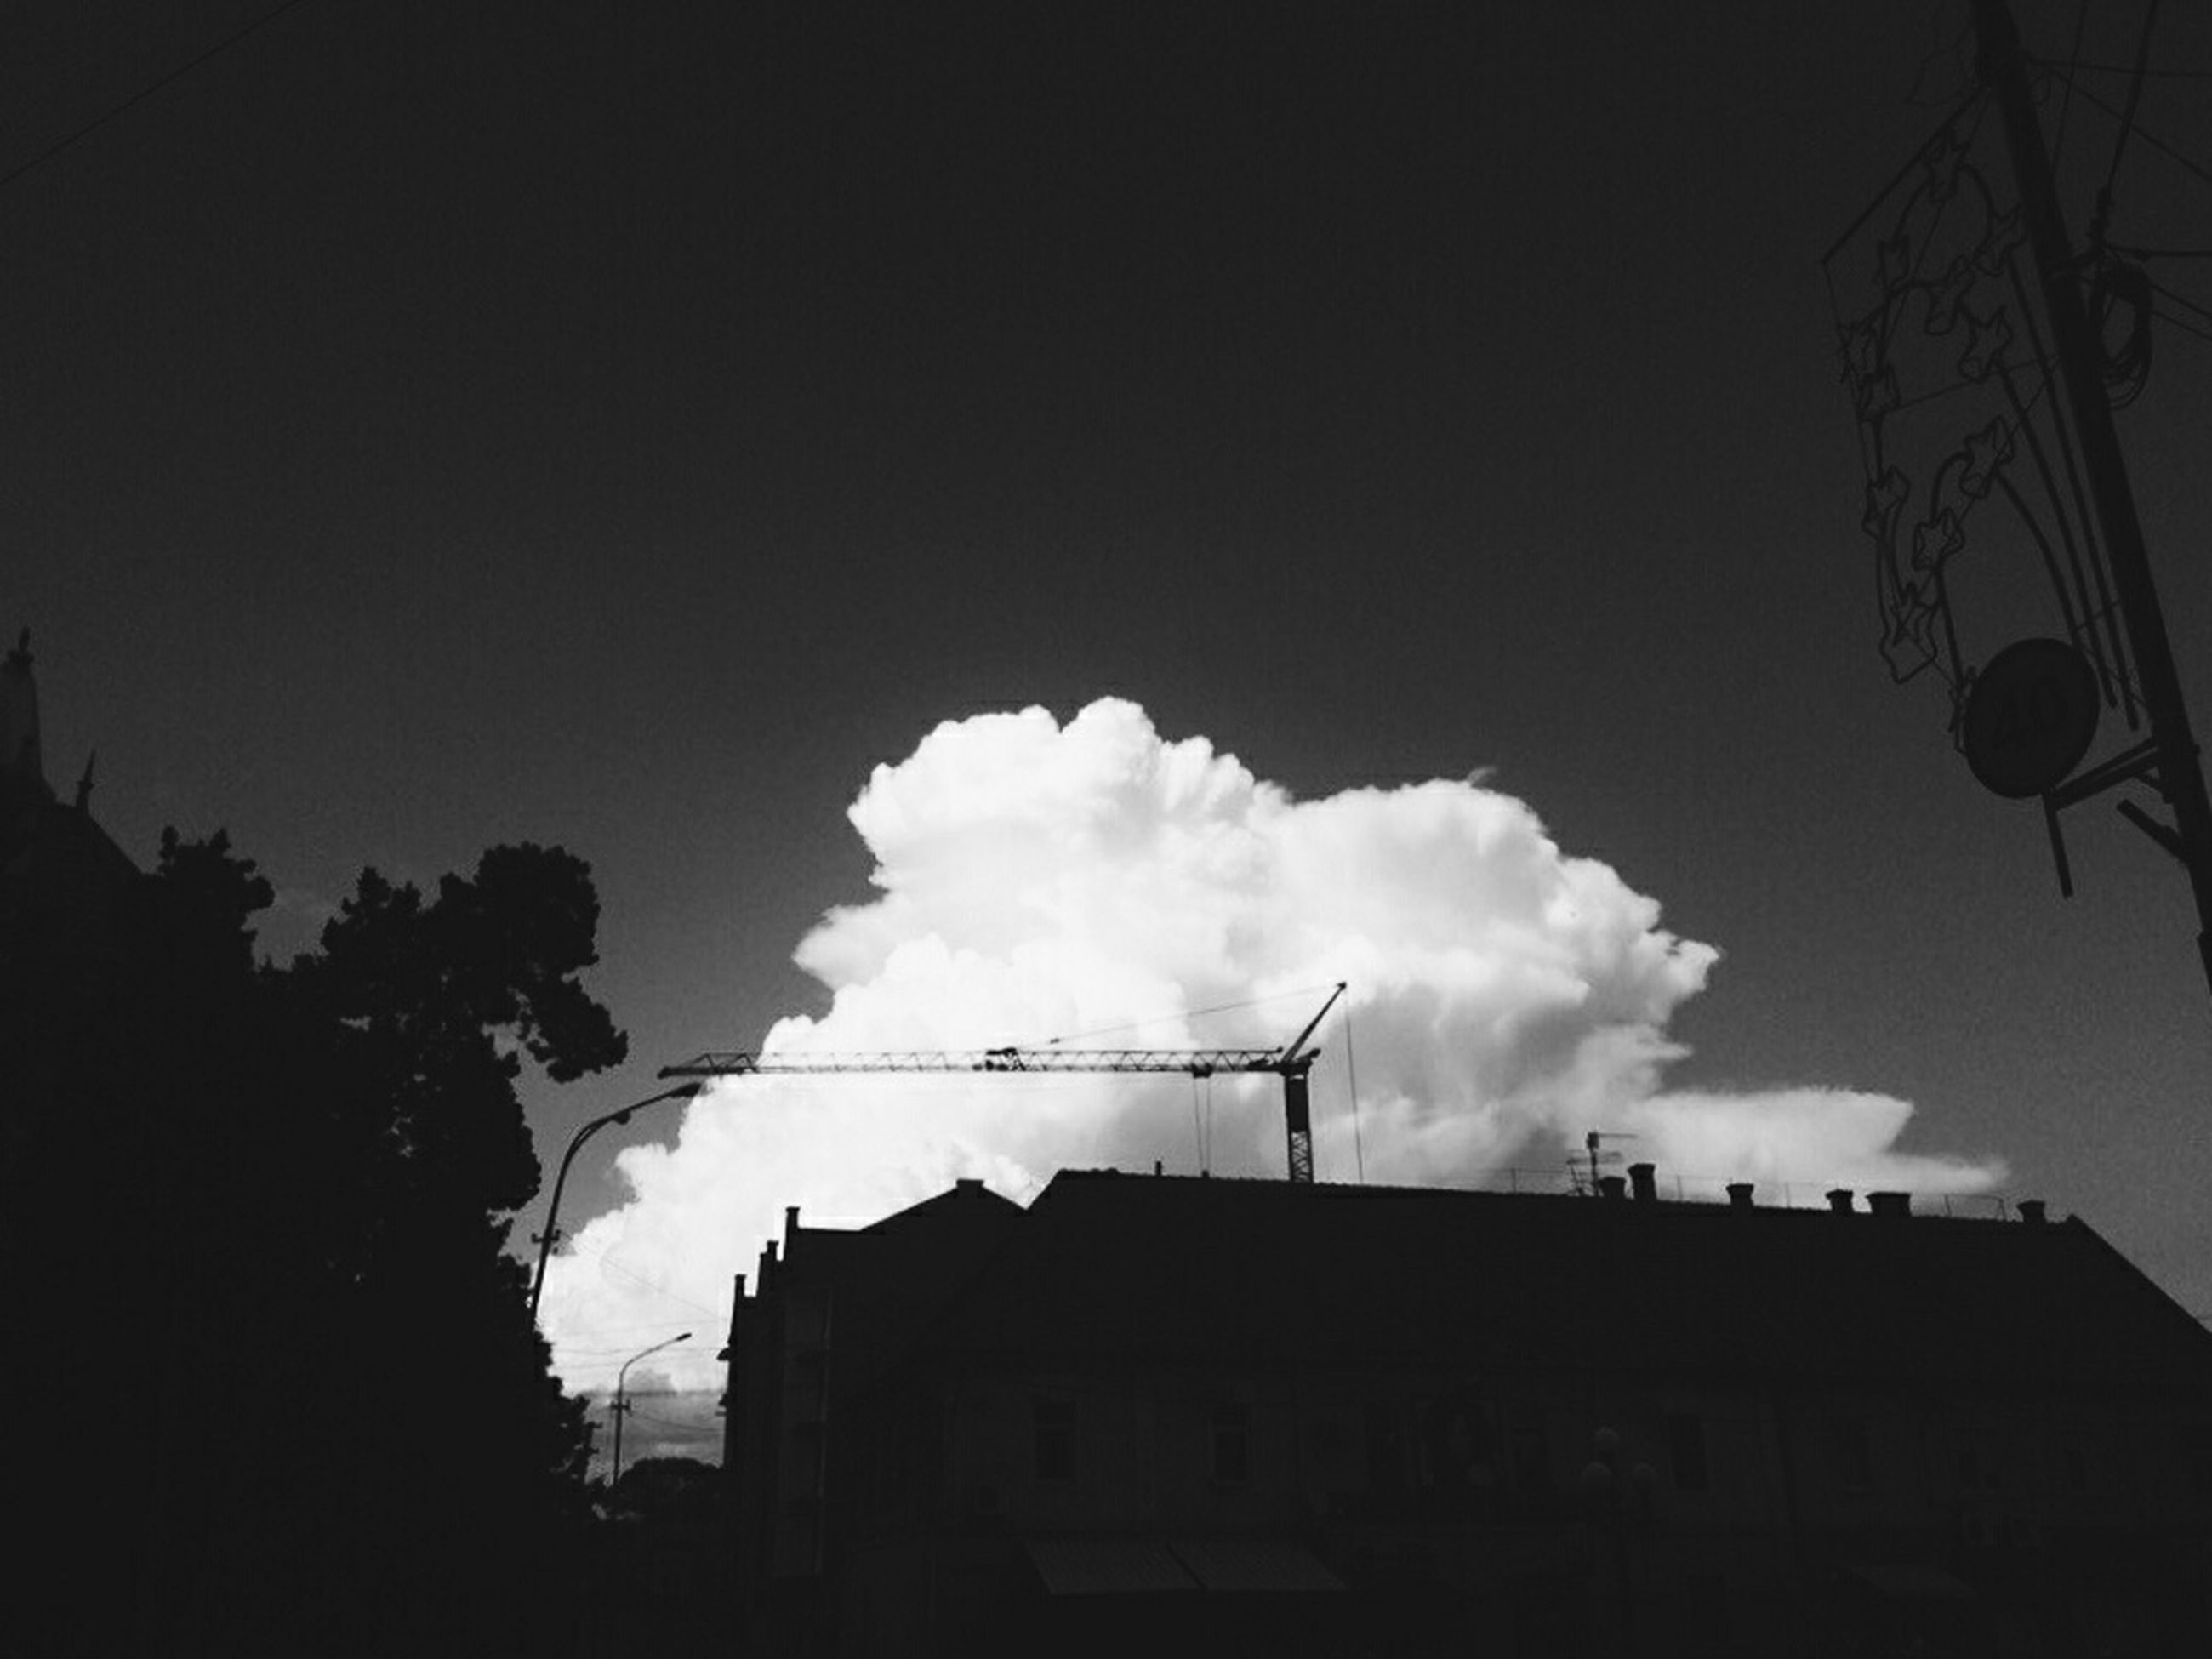 building exterior, architecture, built structure, low angle view, sky, building, cloud - sky, residential structure, residential building, house, city, high section, silhouette, cloudy, outdoors, cloud, no people, dusk, day, weather